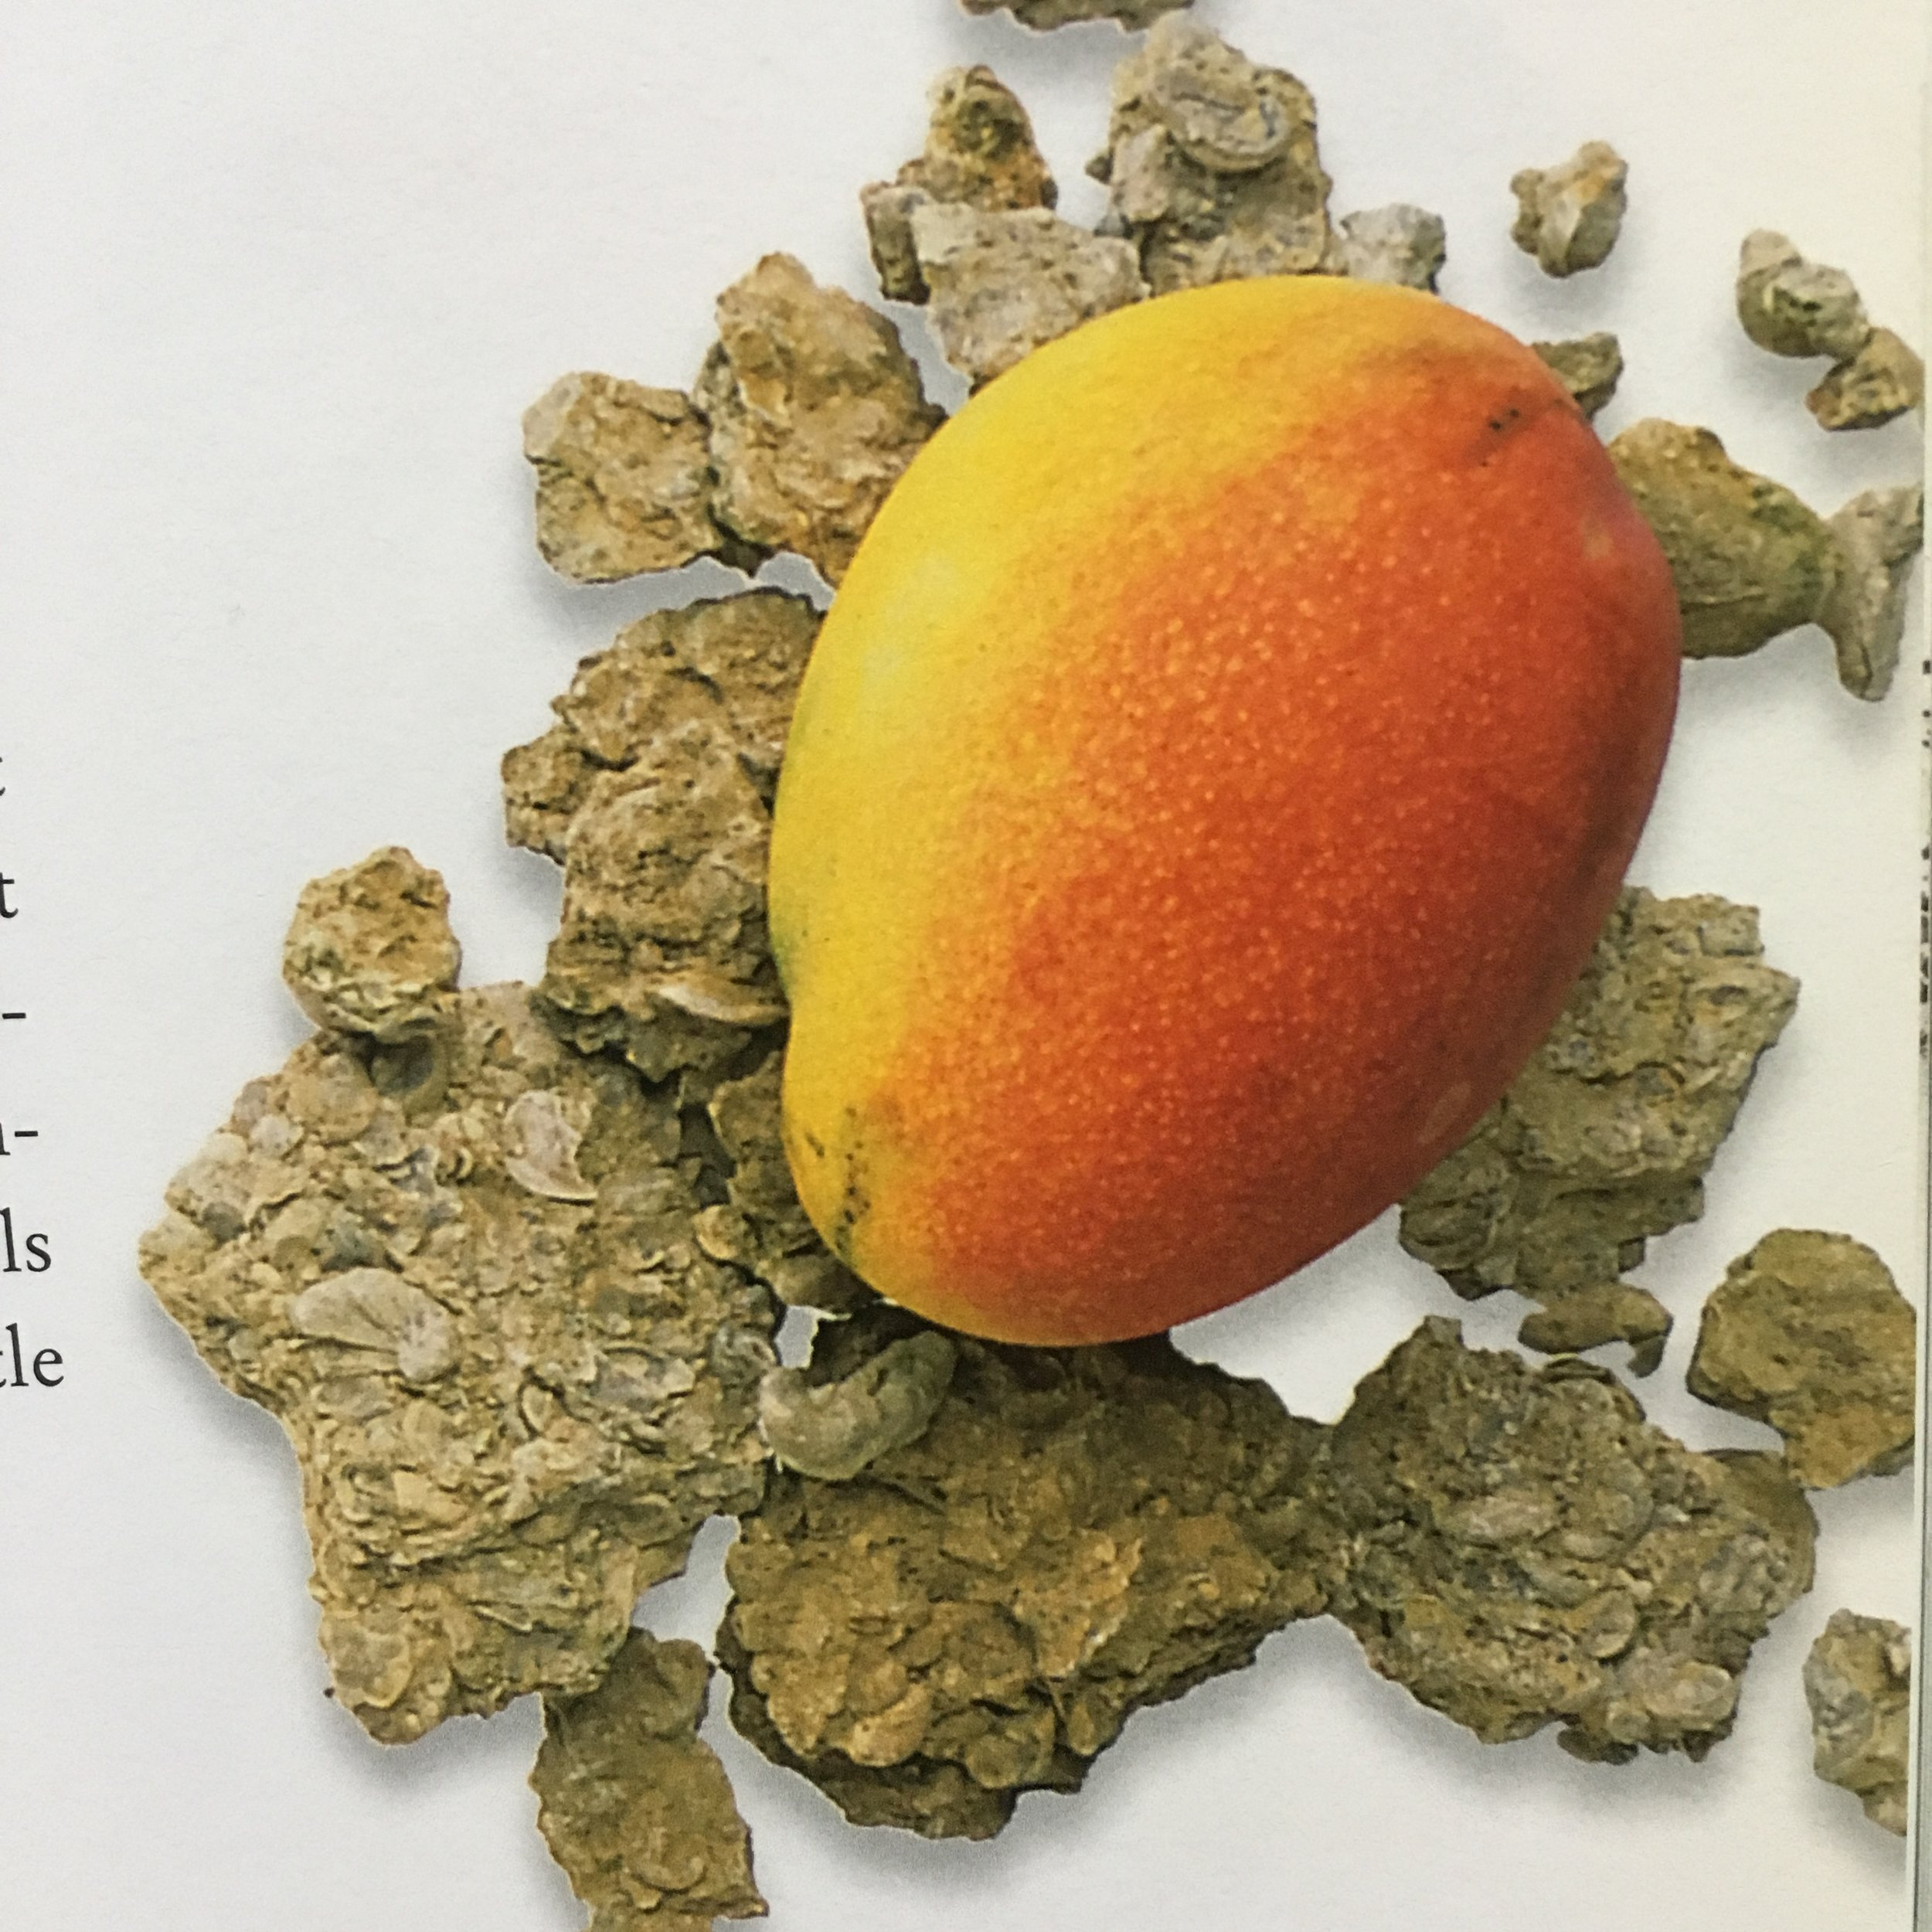 Shell limestone and Mango